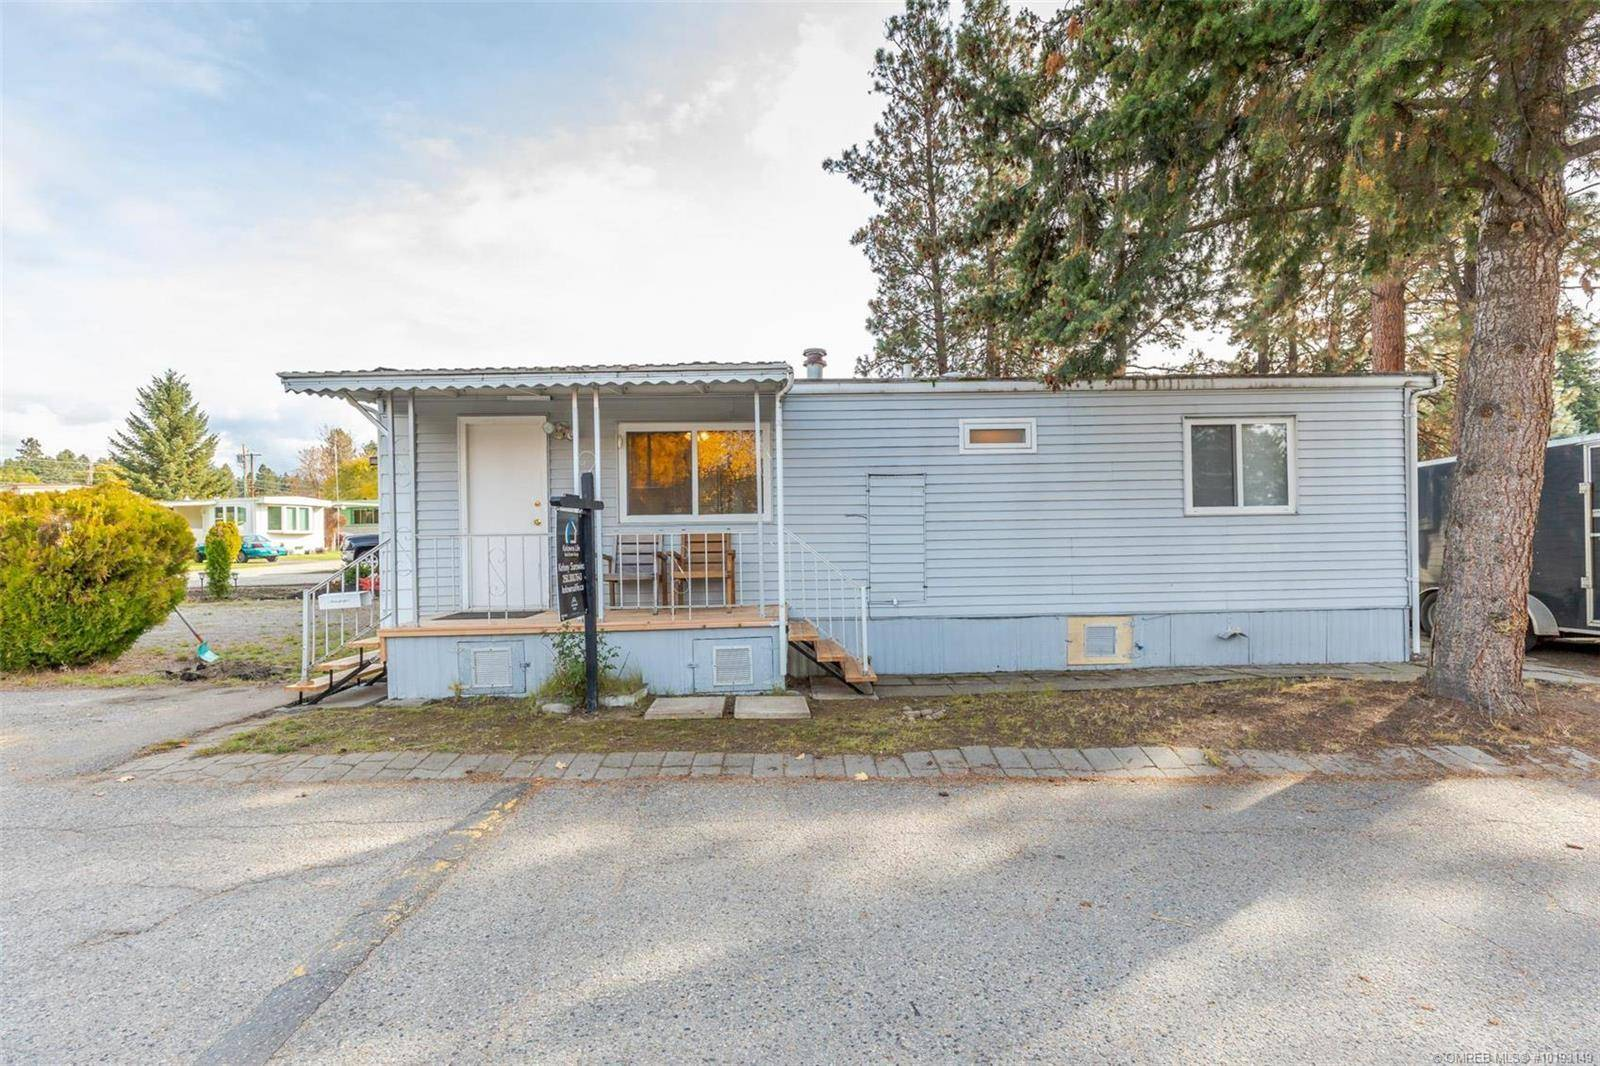 Residential property for sale at 3535 Mcculloch Rd Unit 44 Kelowna British Columbia - MLS: 10193149